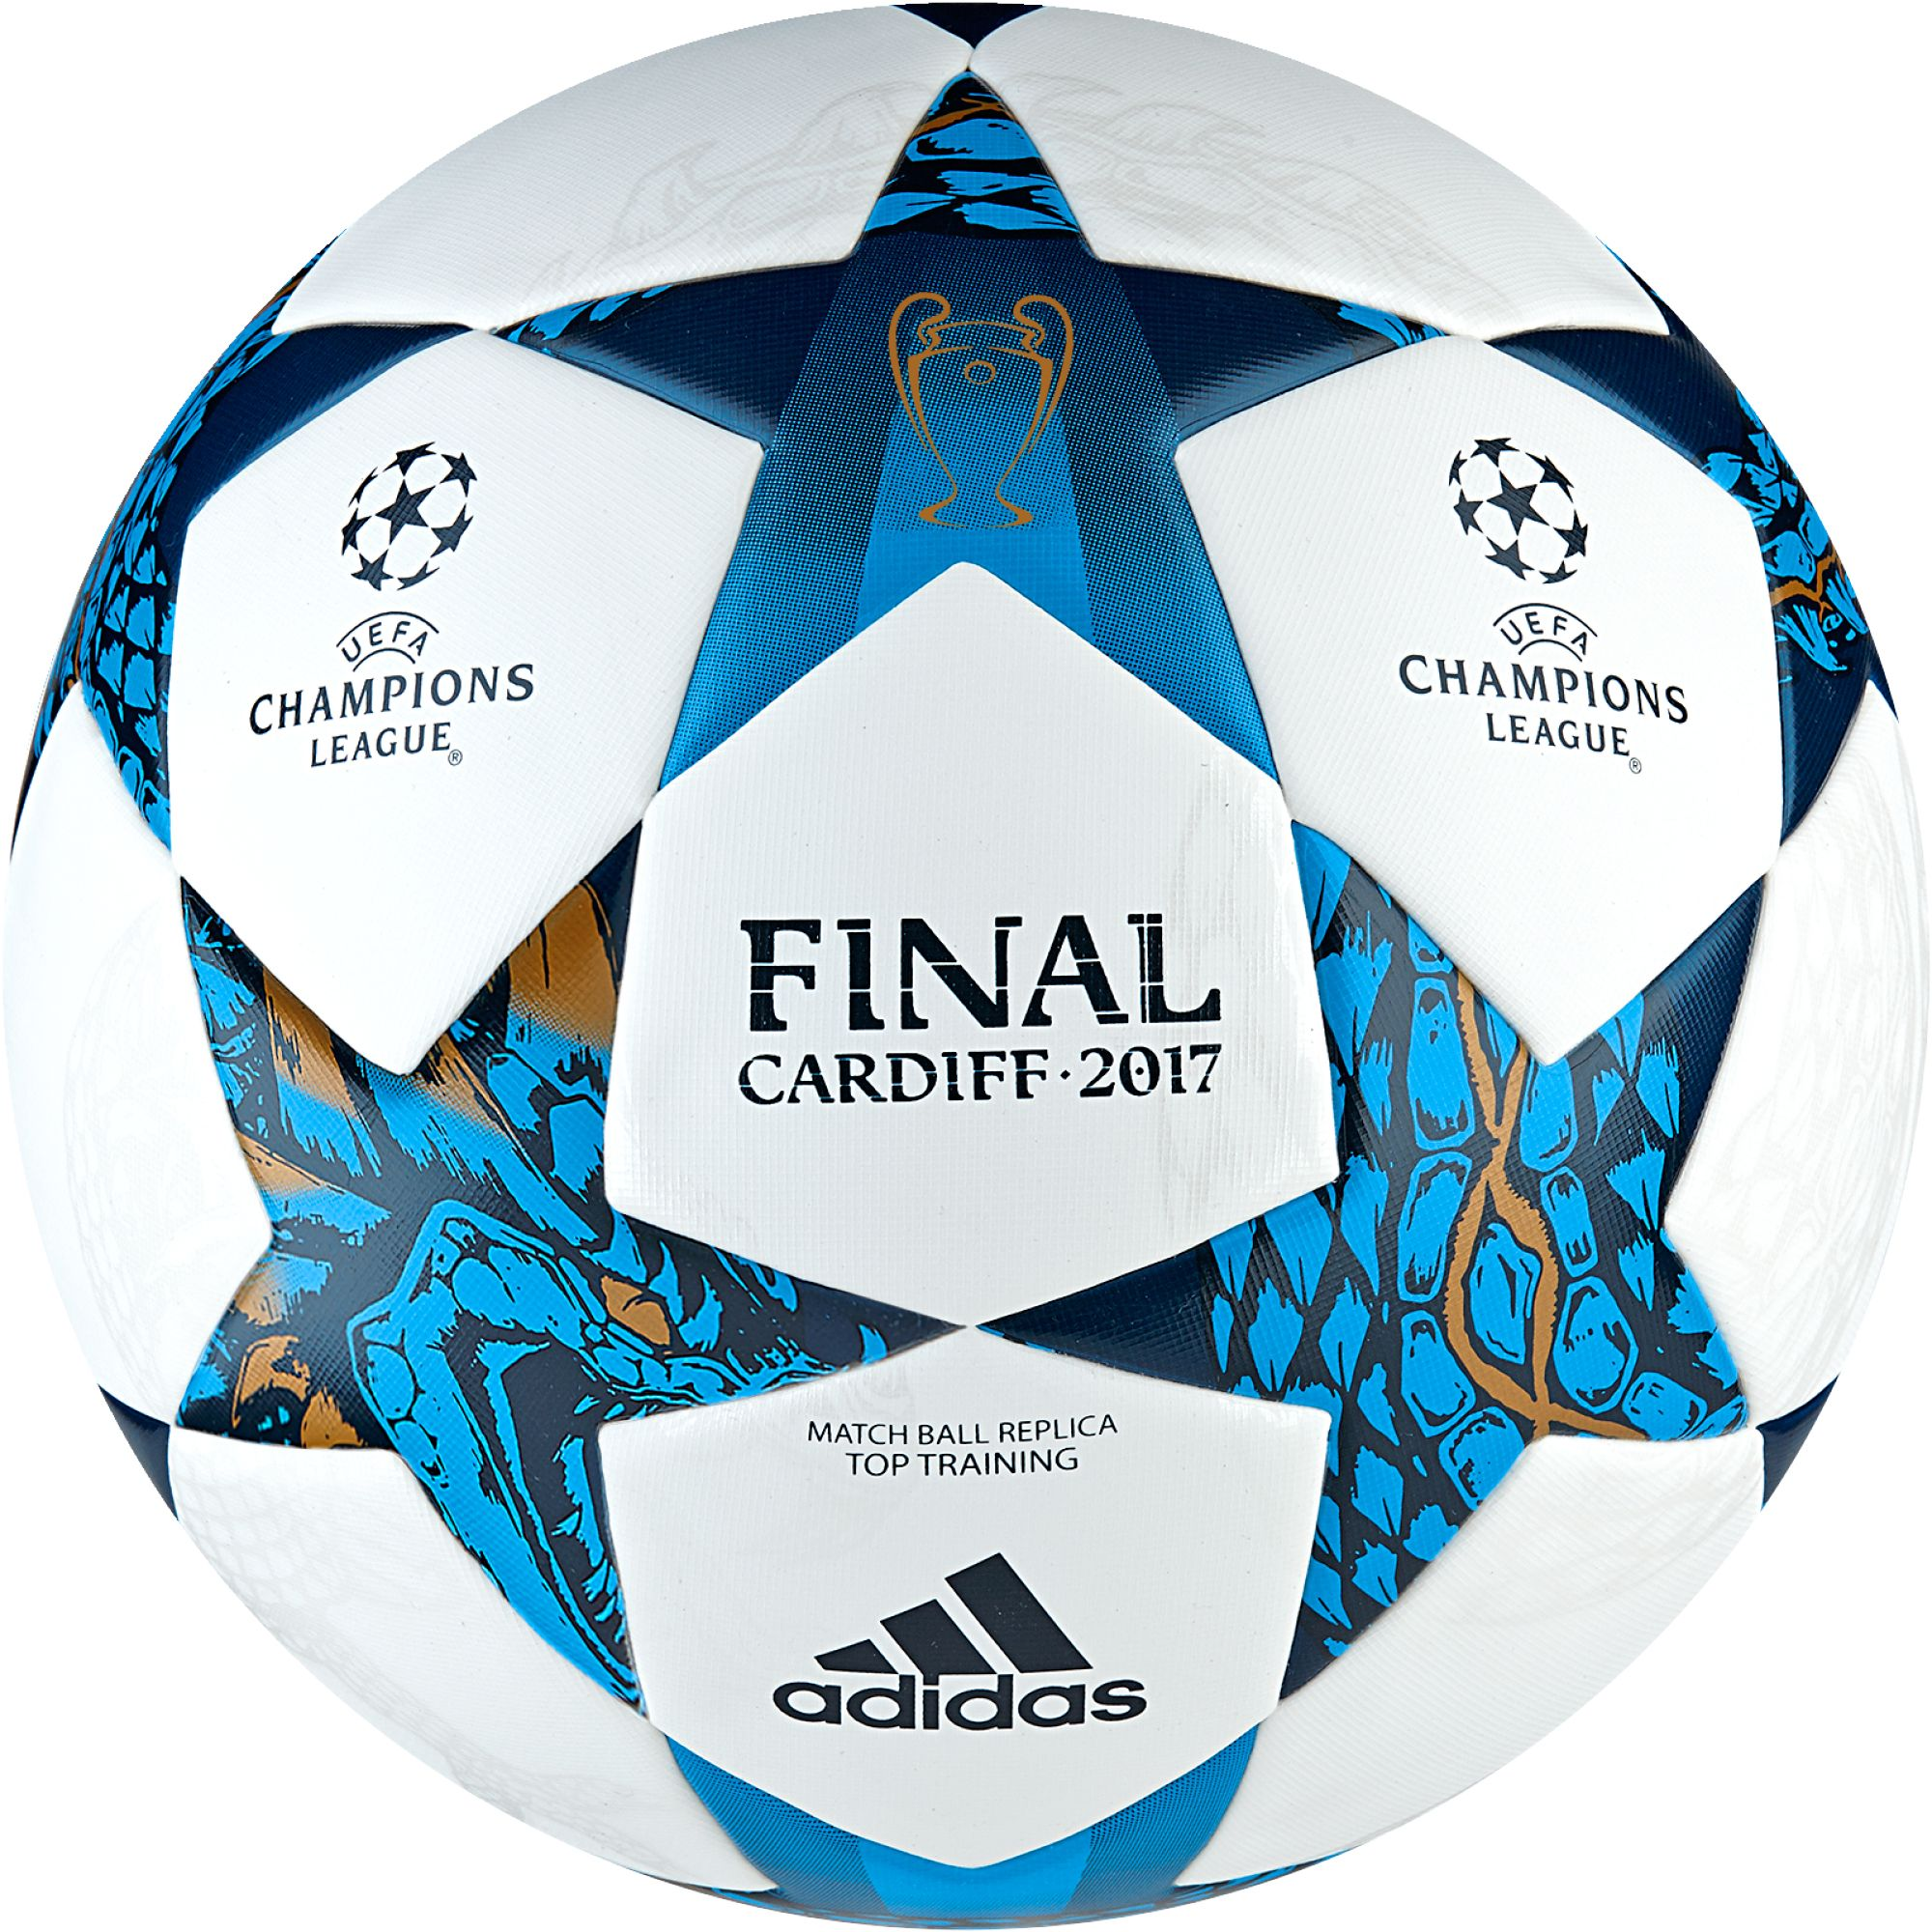 Cool soccer balls dicks sporting goods product image adidas uefa champions league finale cardiff top training soccer ball voltagebd Images